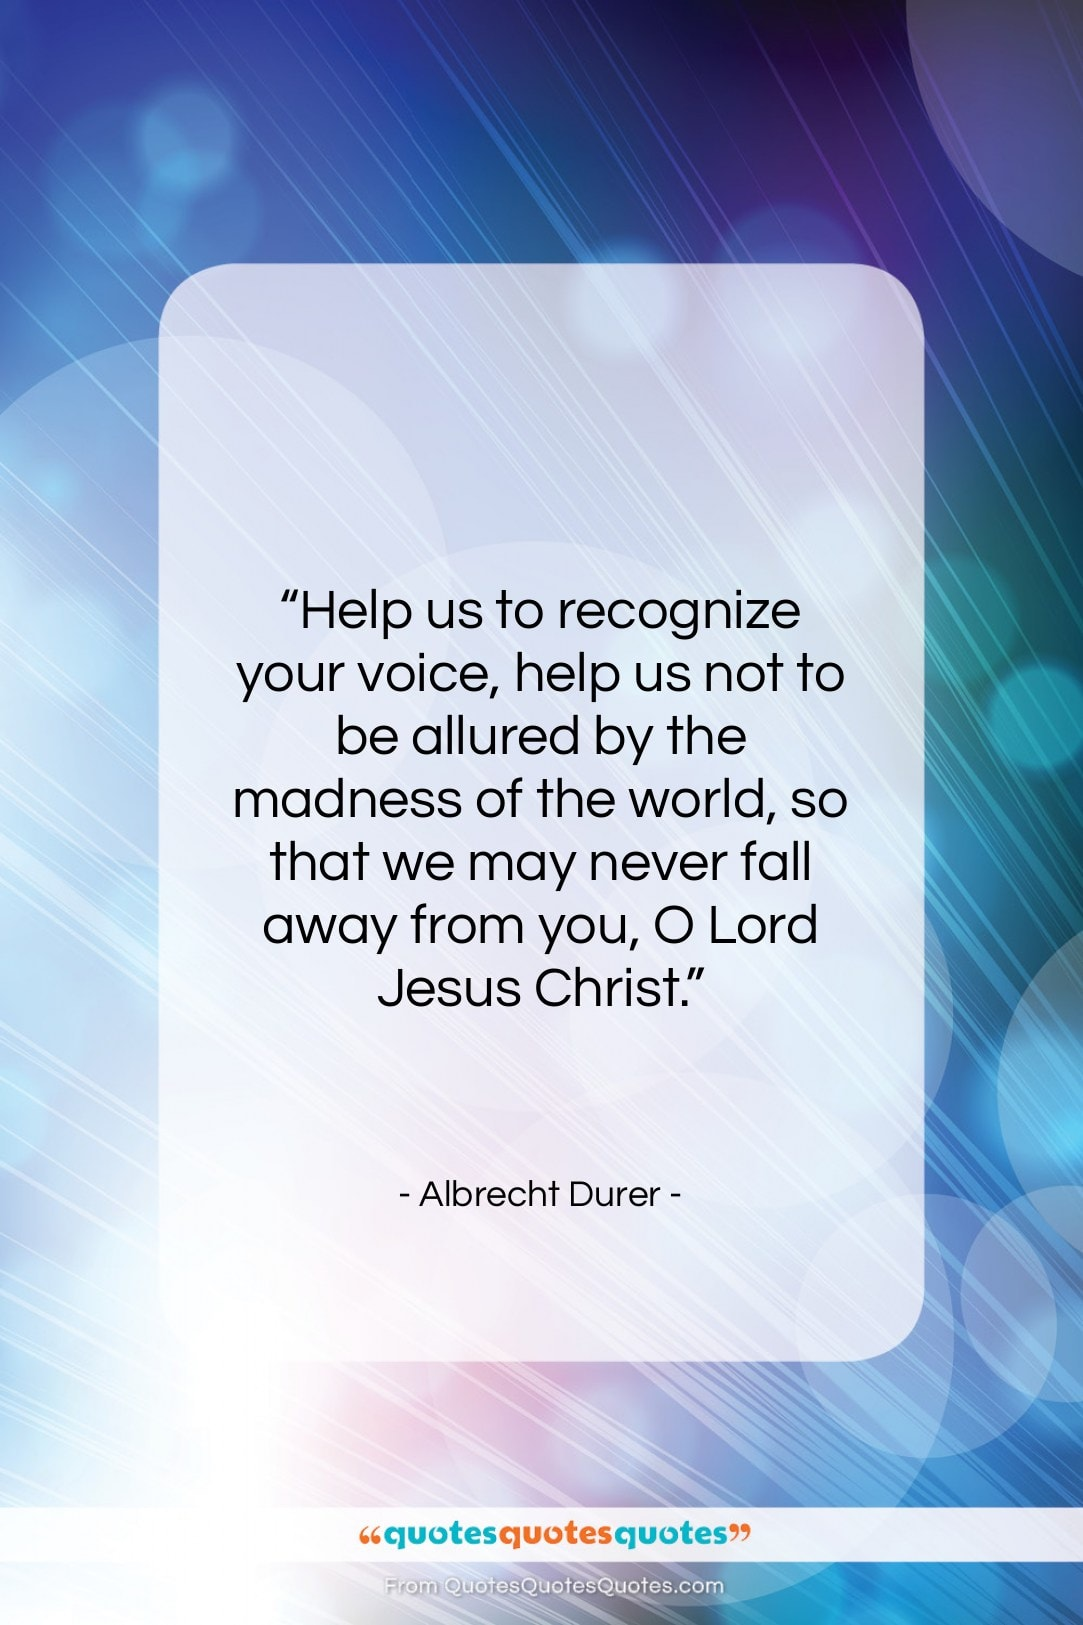 """Albrecht Durer quote: """"Help us to recognize your voice, help…""""- at QuotesQuotesQuotes.com"""